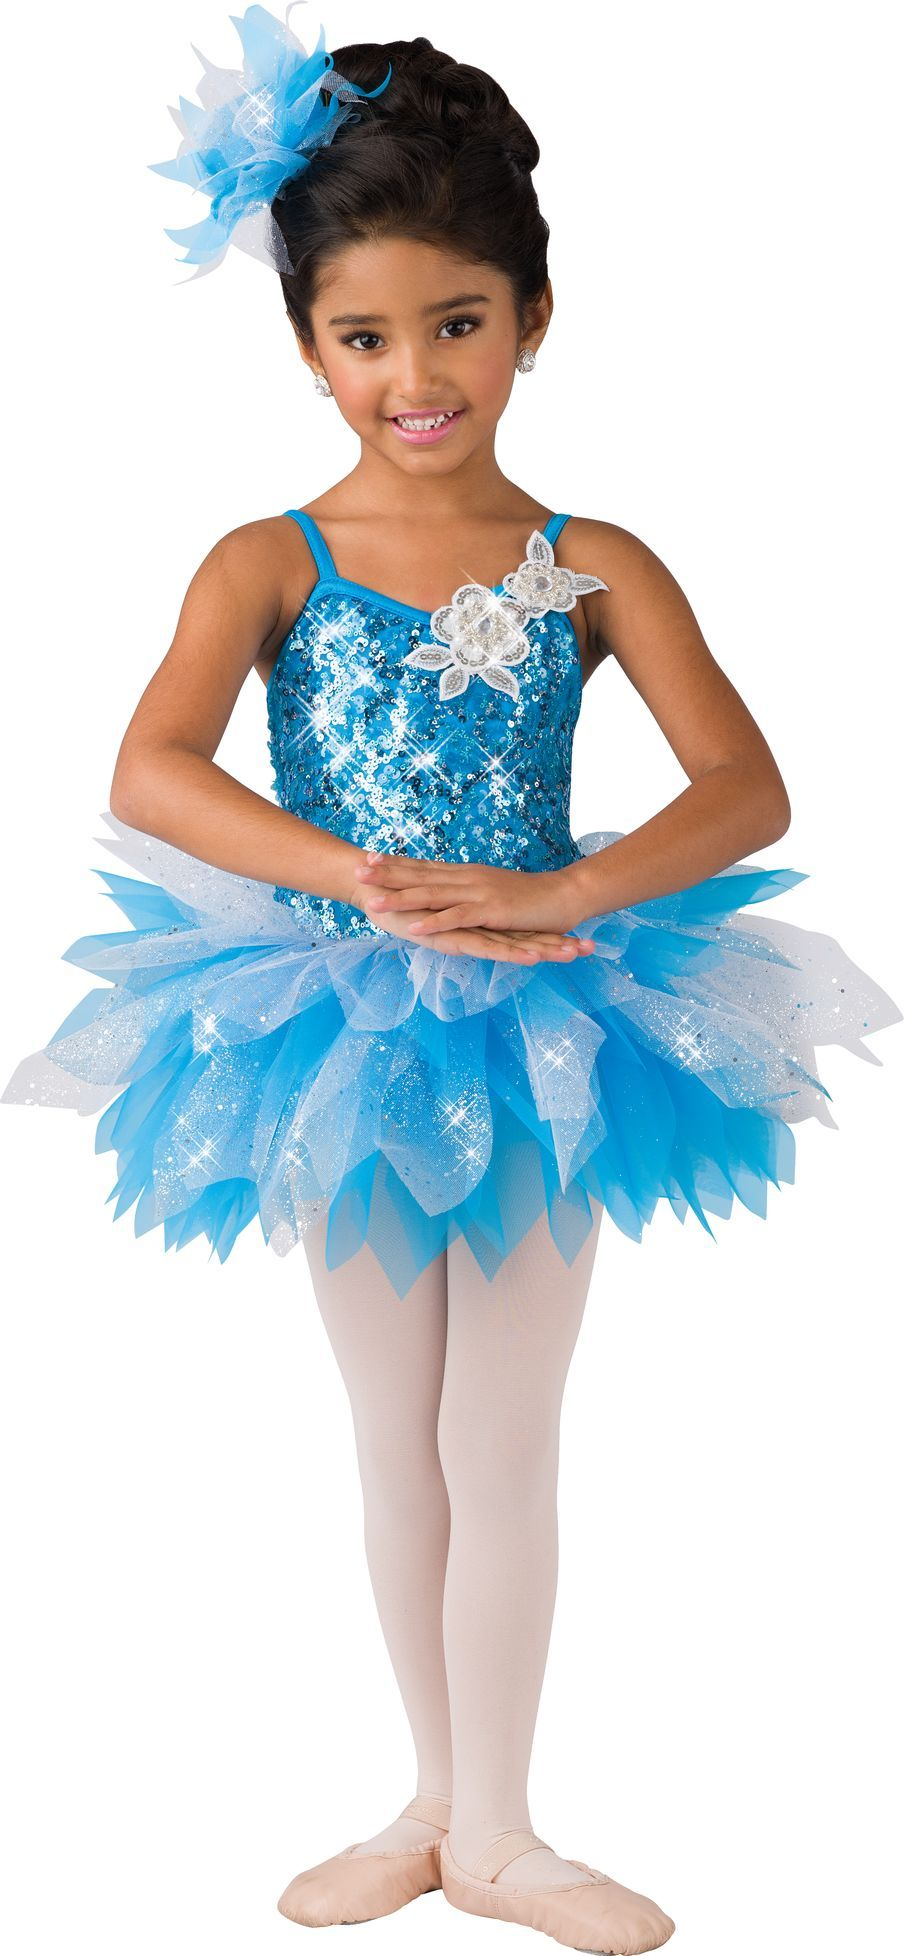 bce512eae1 Multi sequin mesh over turquoise lycra leotard. Attached white sparkle  tulle and turquoise tricot feathered tutu. Appliqué trim. Made in the USA.